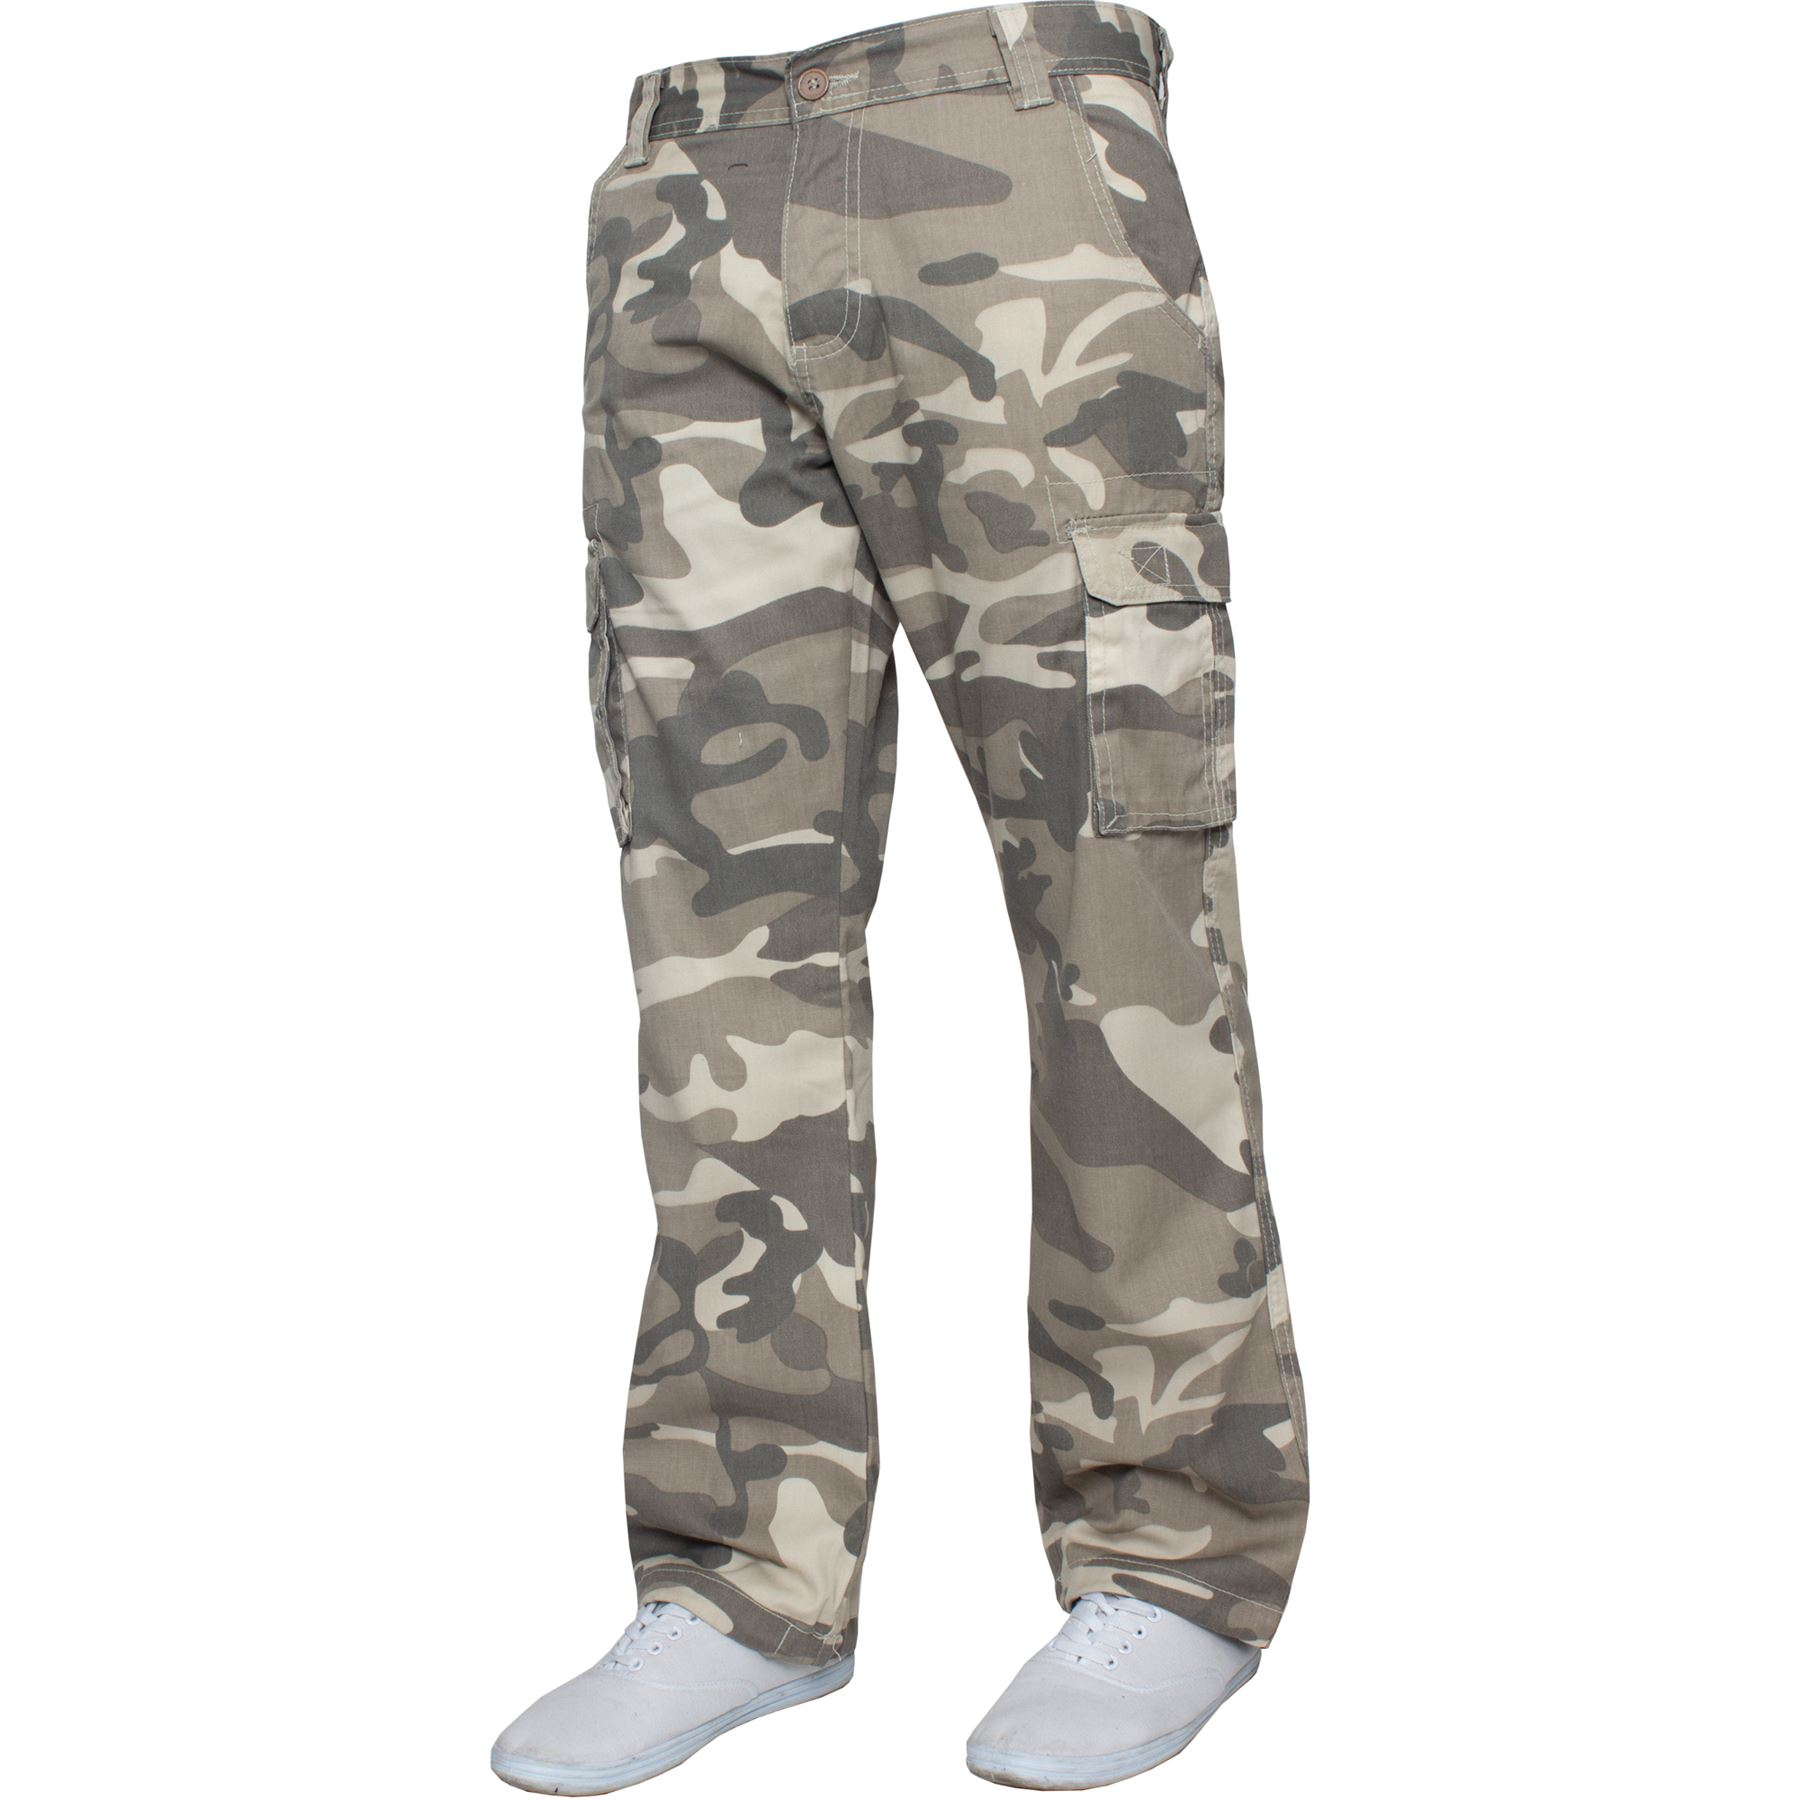 Kruze-Mens-Military-Combat-Trousers-Camouflage-Cargo-Camo-Army-Casual-Work-Pants thumbnail 3